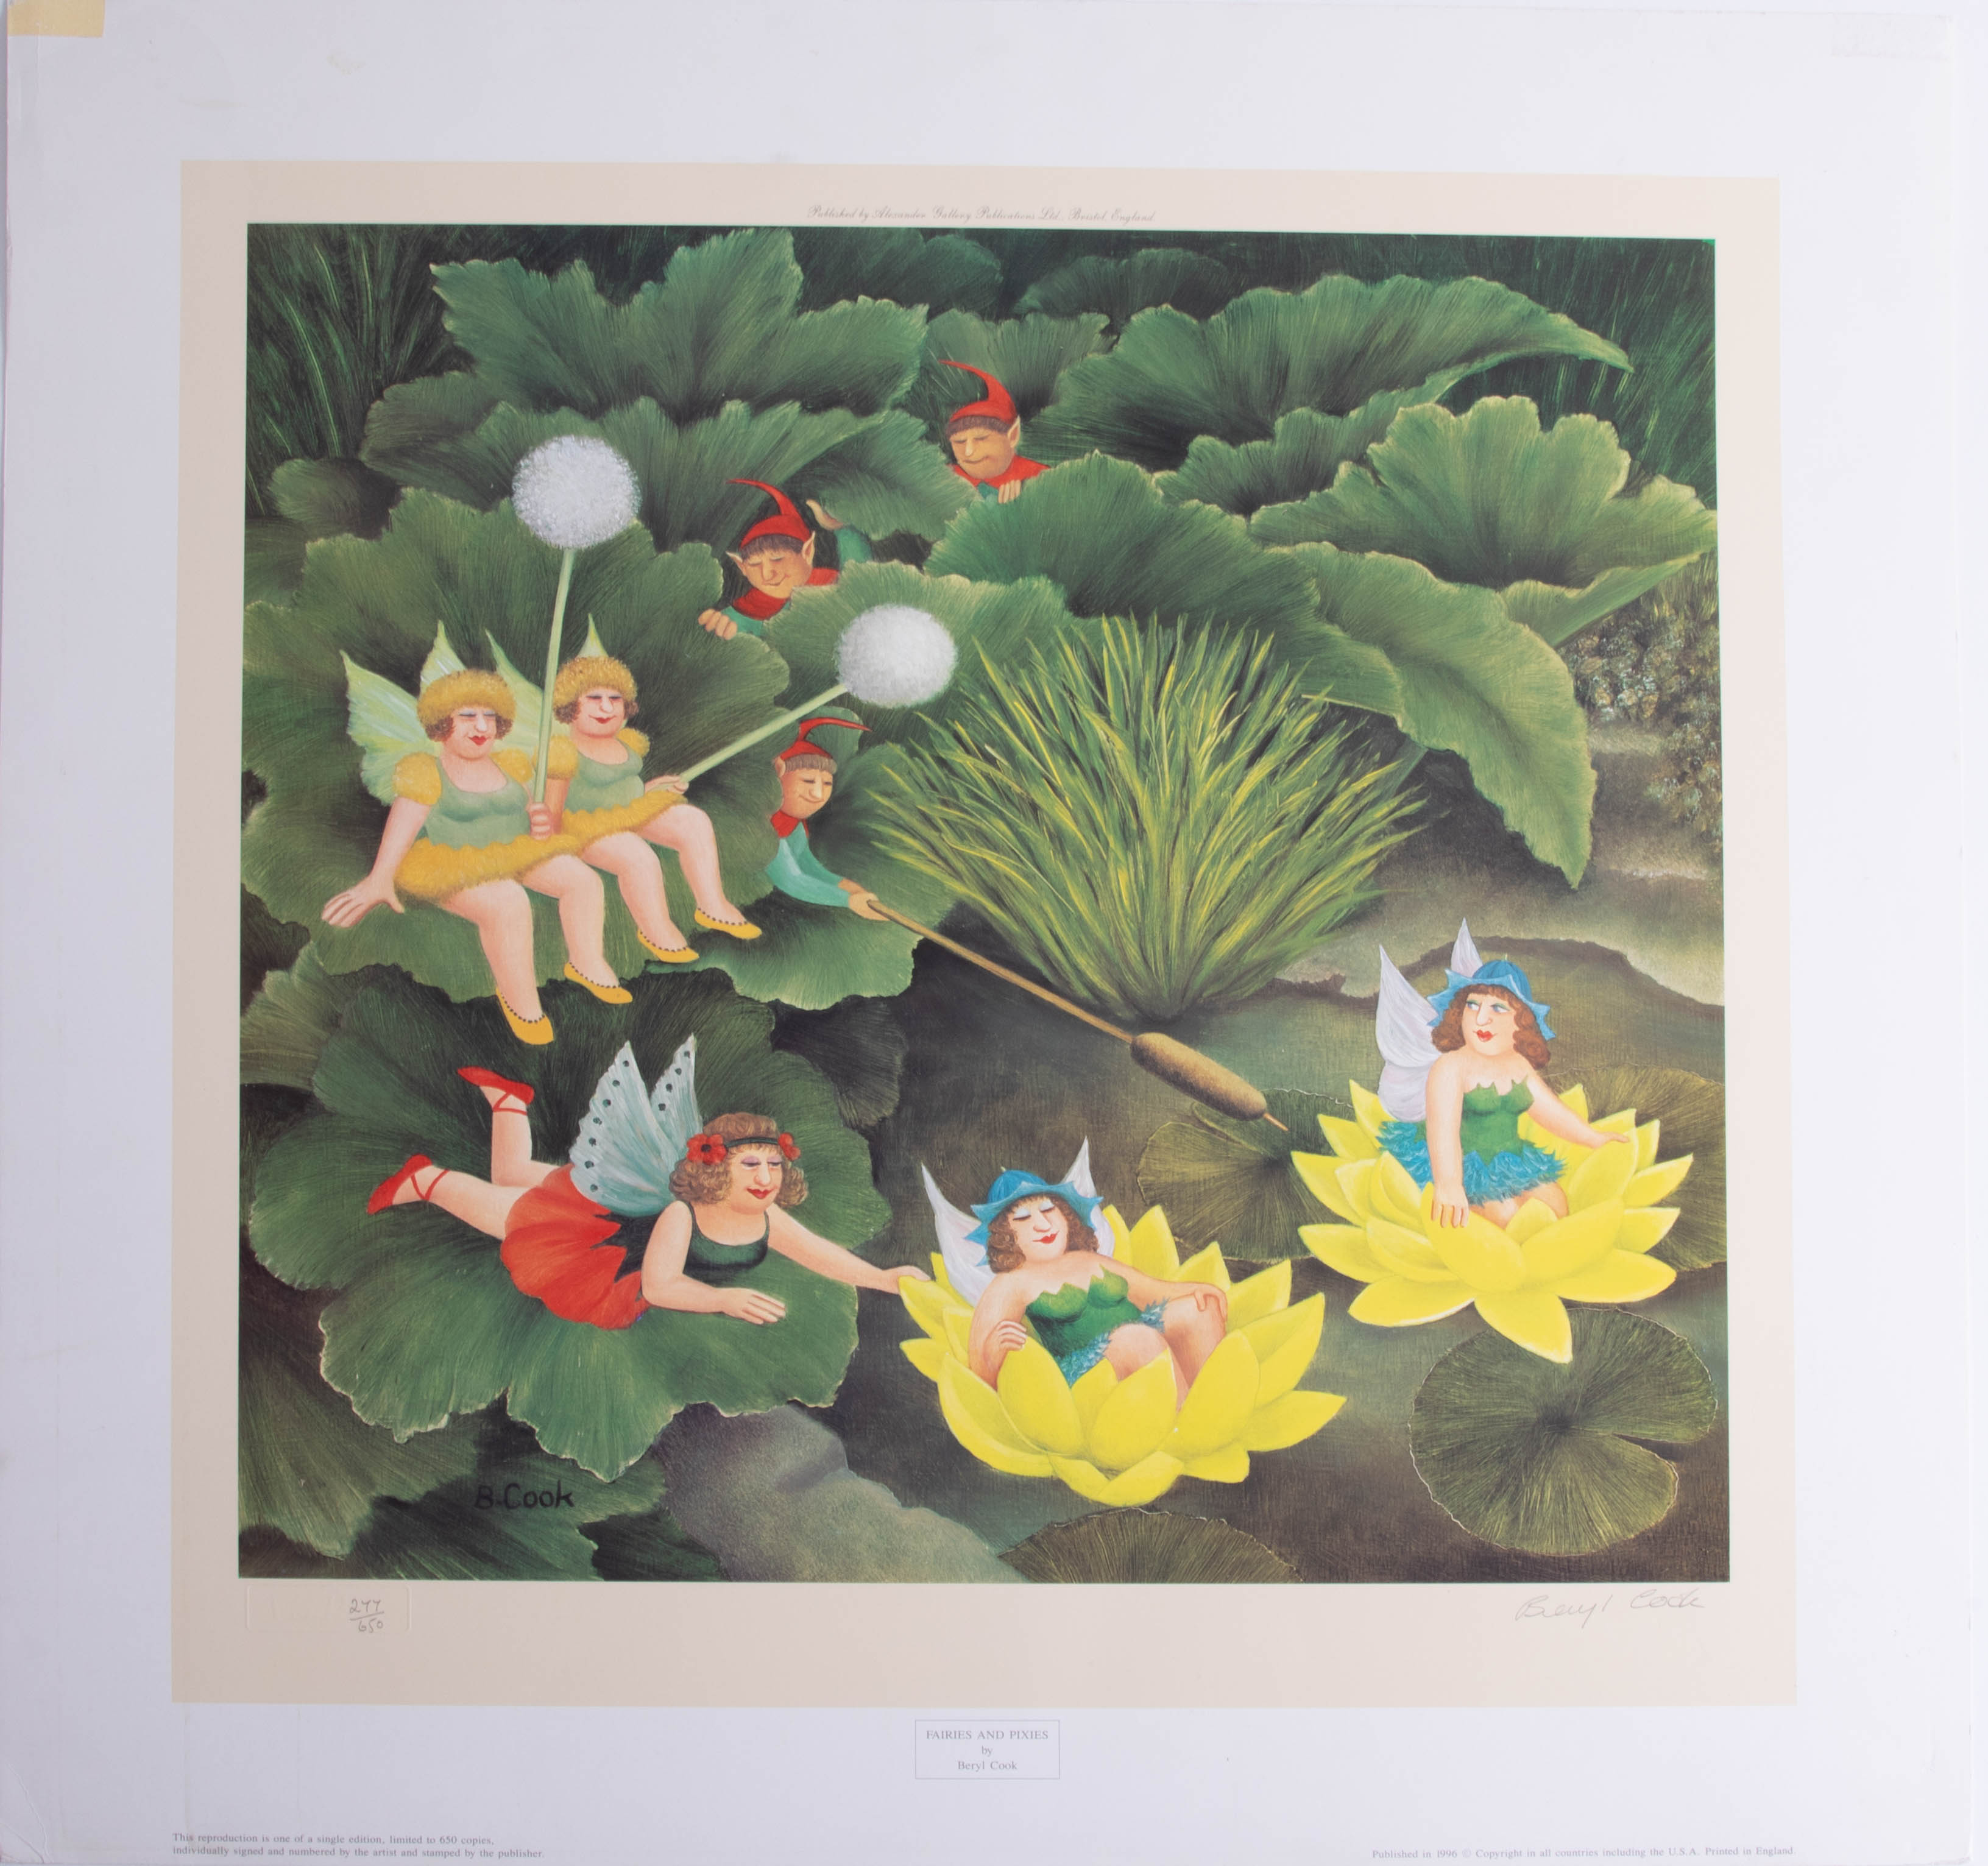 Lot 028 - Beryl Cook (1926-2008), 'Fairies and Pixies', signed limited edition print, No 277/650, published by